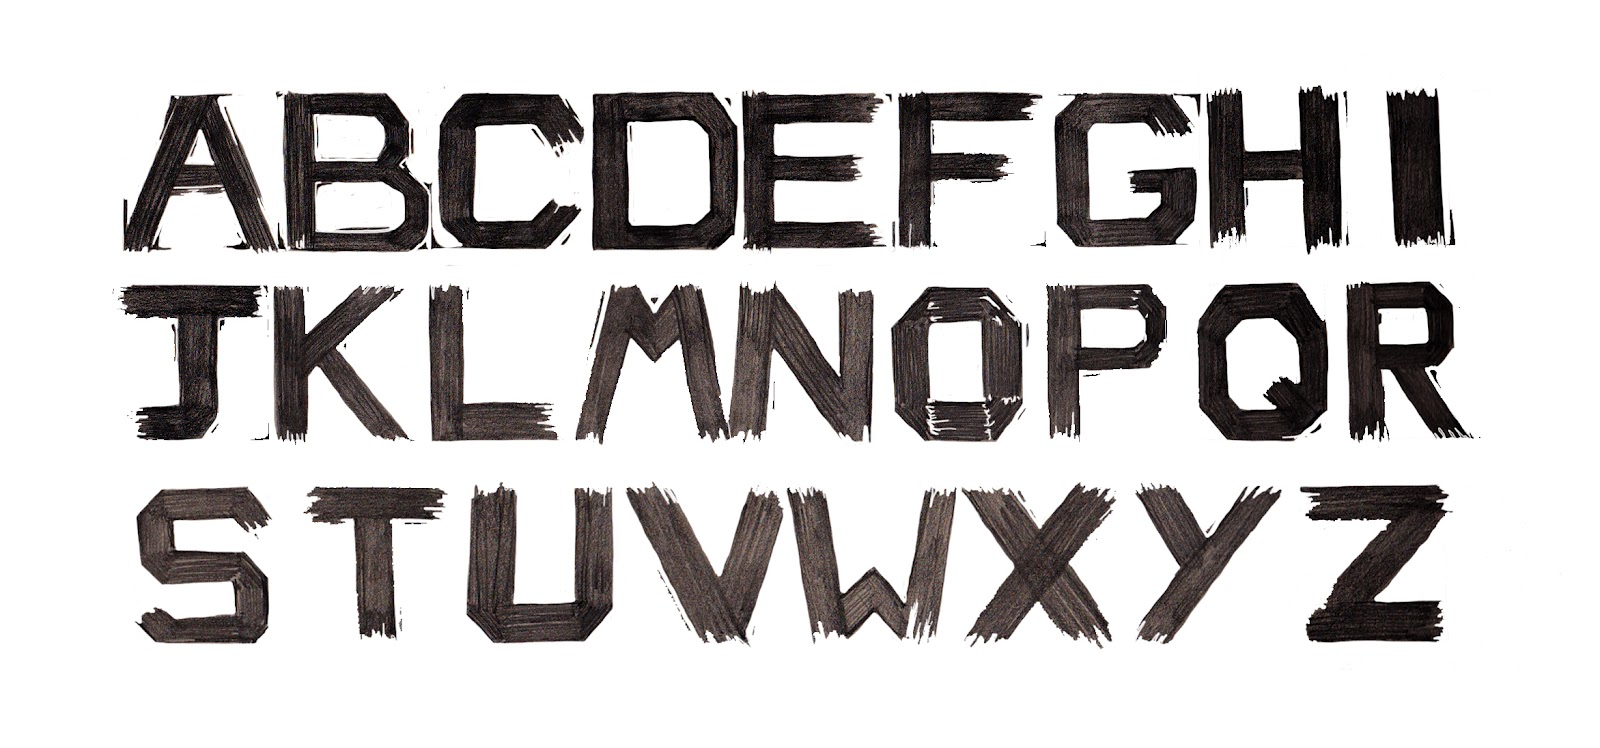 Family Font Design Designed my Own Font Which